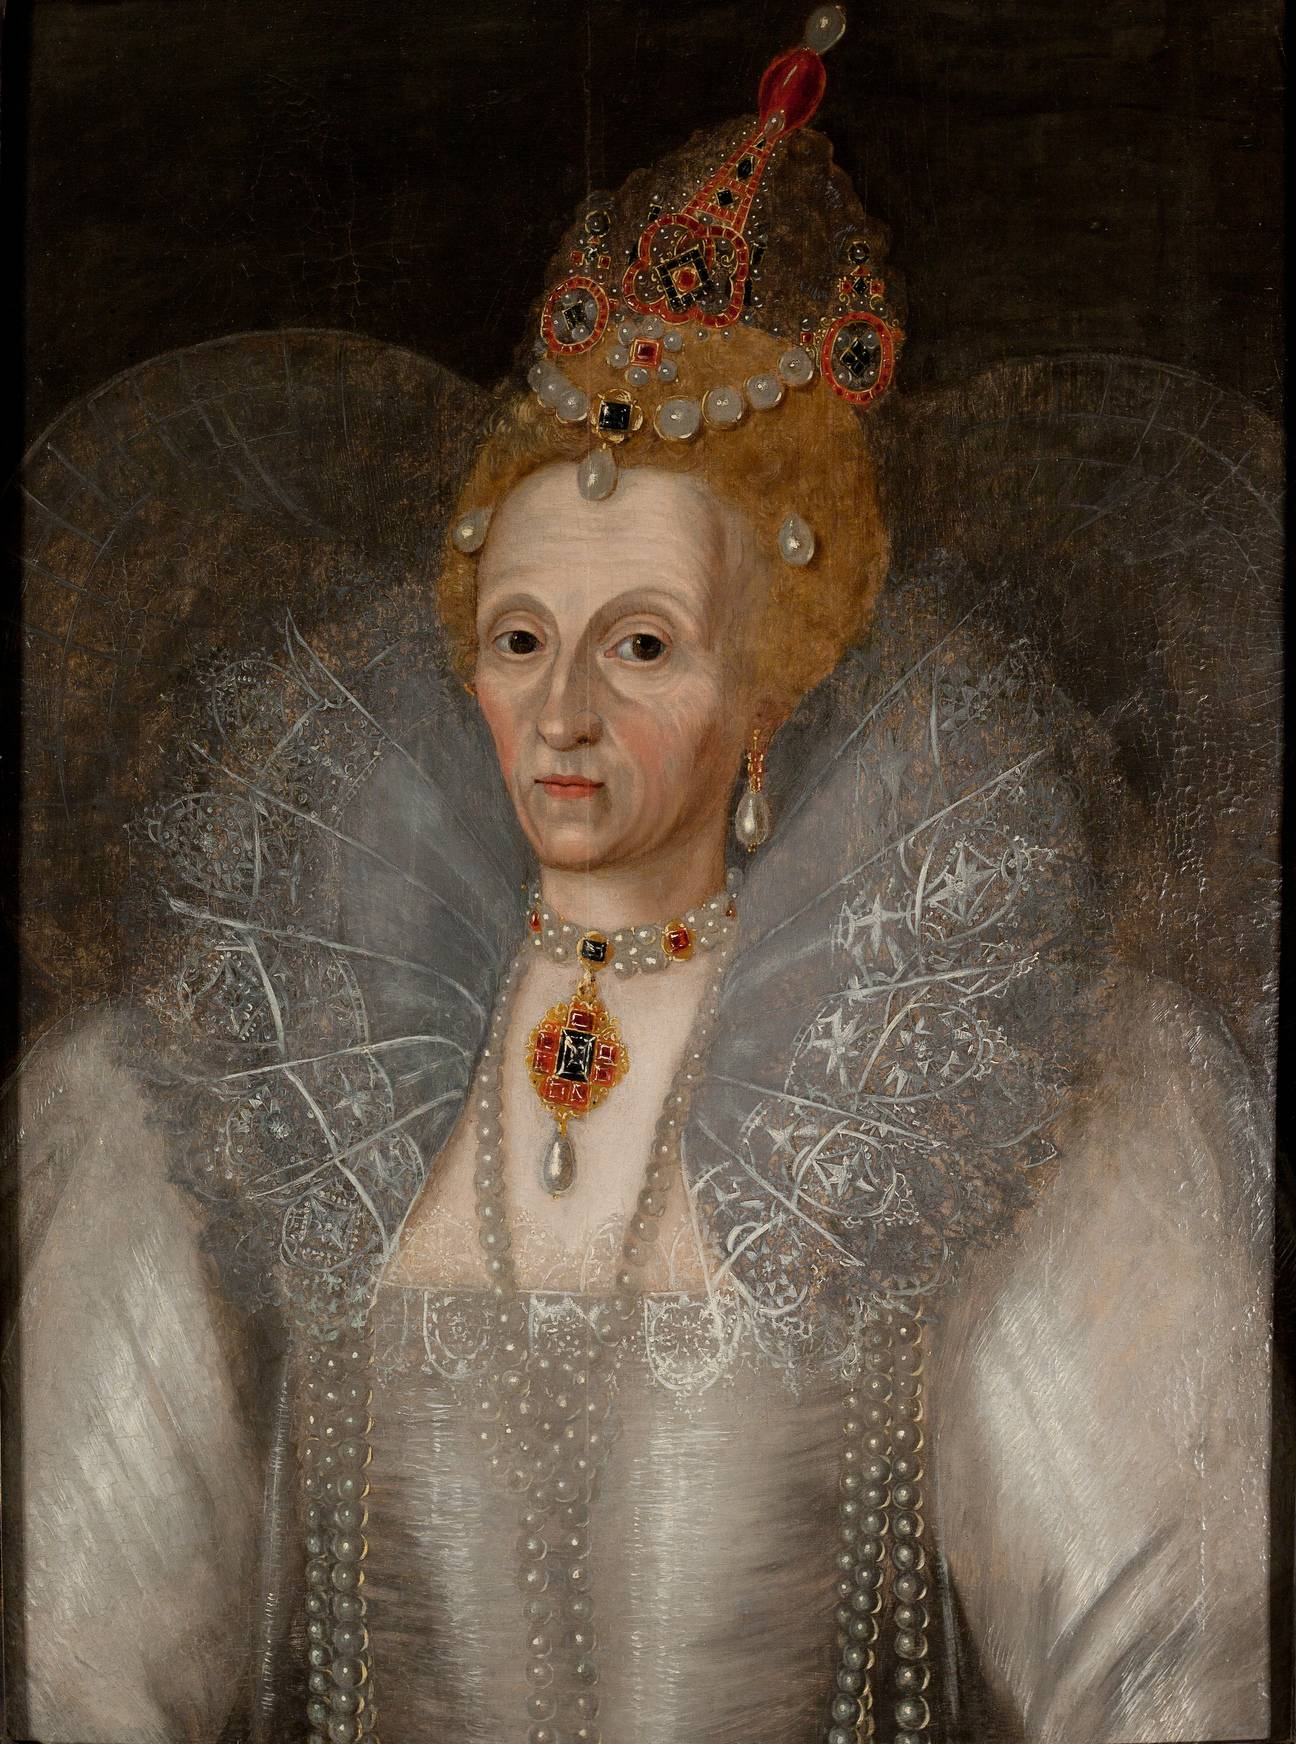 a history of the golden age era during the reign of queen elizabeth i Era is the period associated with the reign of queen elizabeth i  to be a golden age in english history  shakespeare and the elizabethan world.